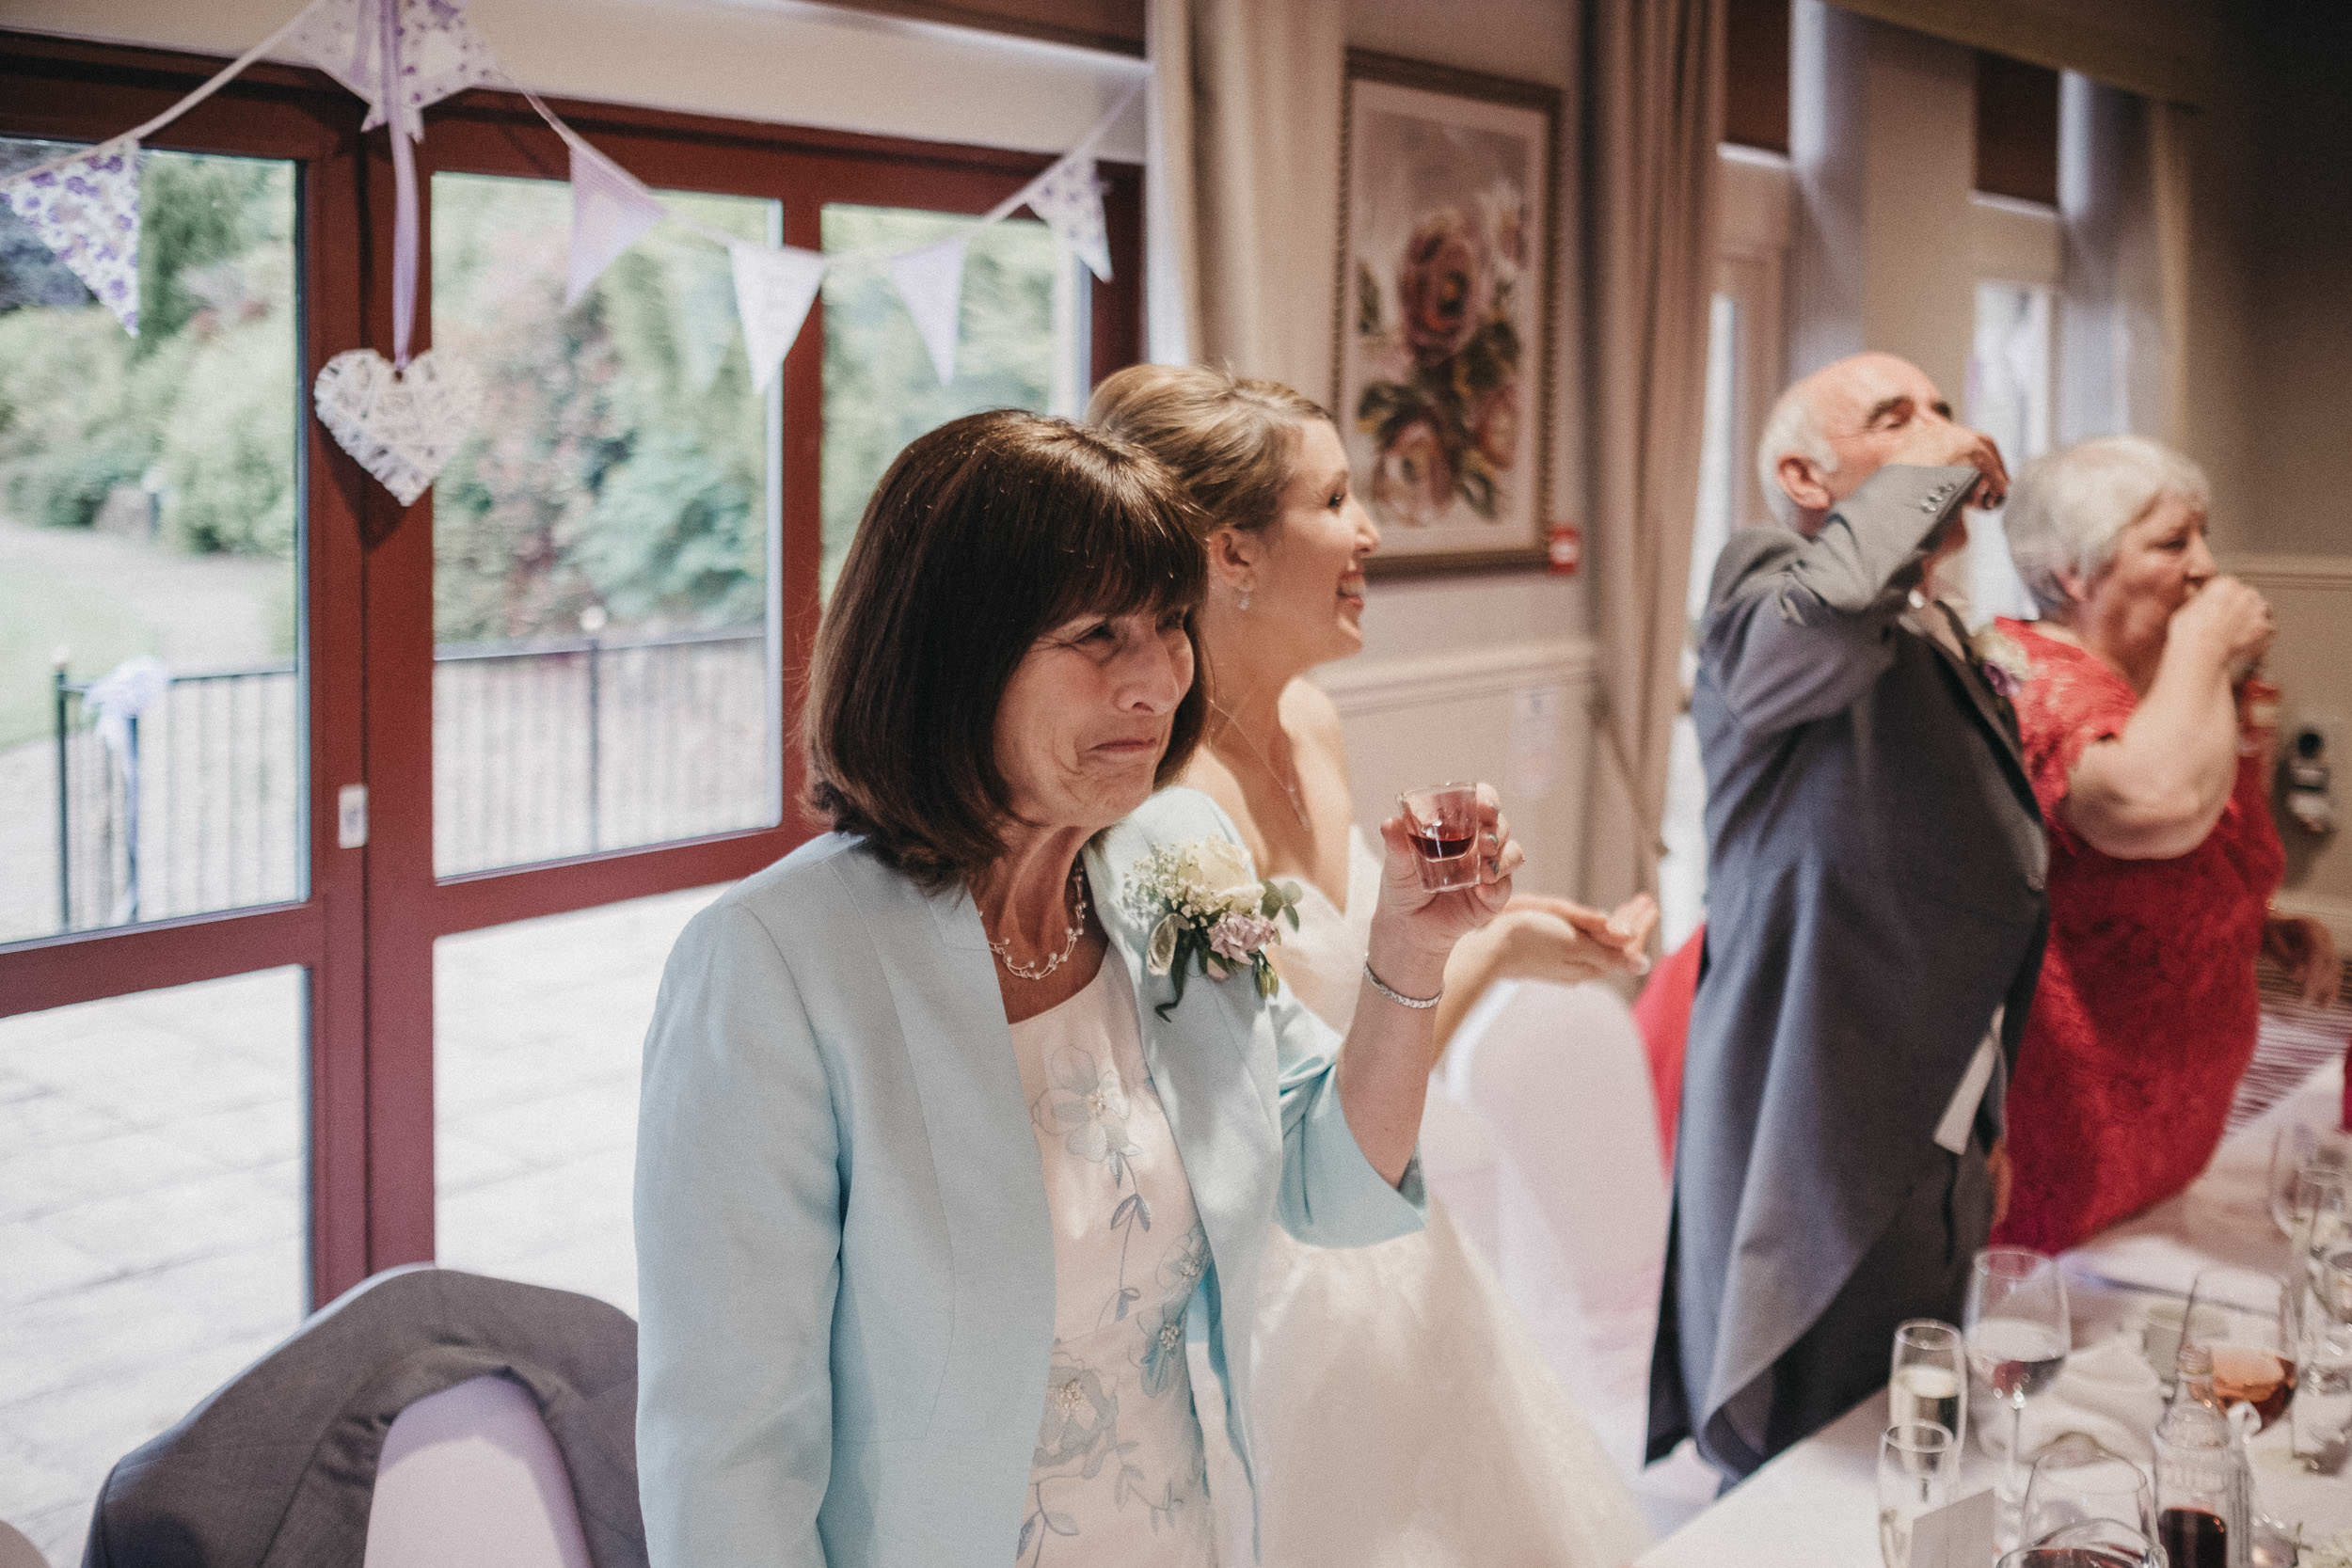 Mother of the groom pulling a funny face after drinking shot